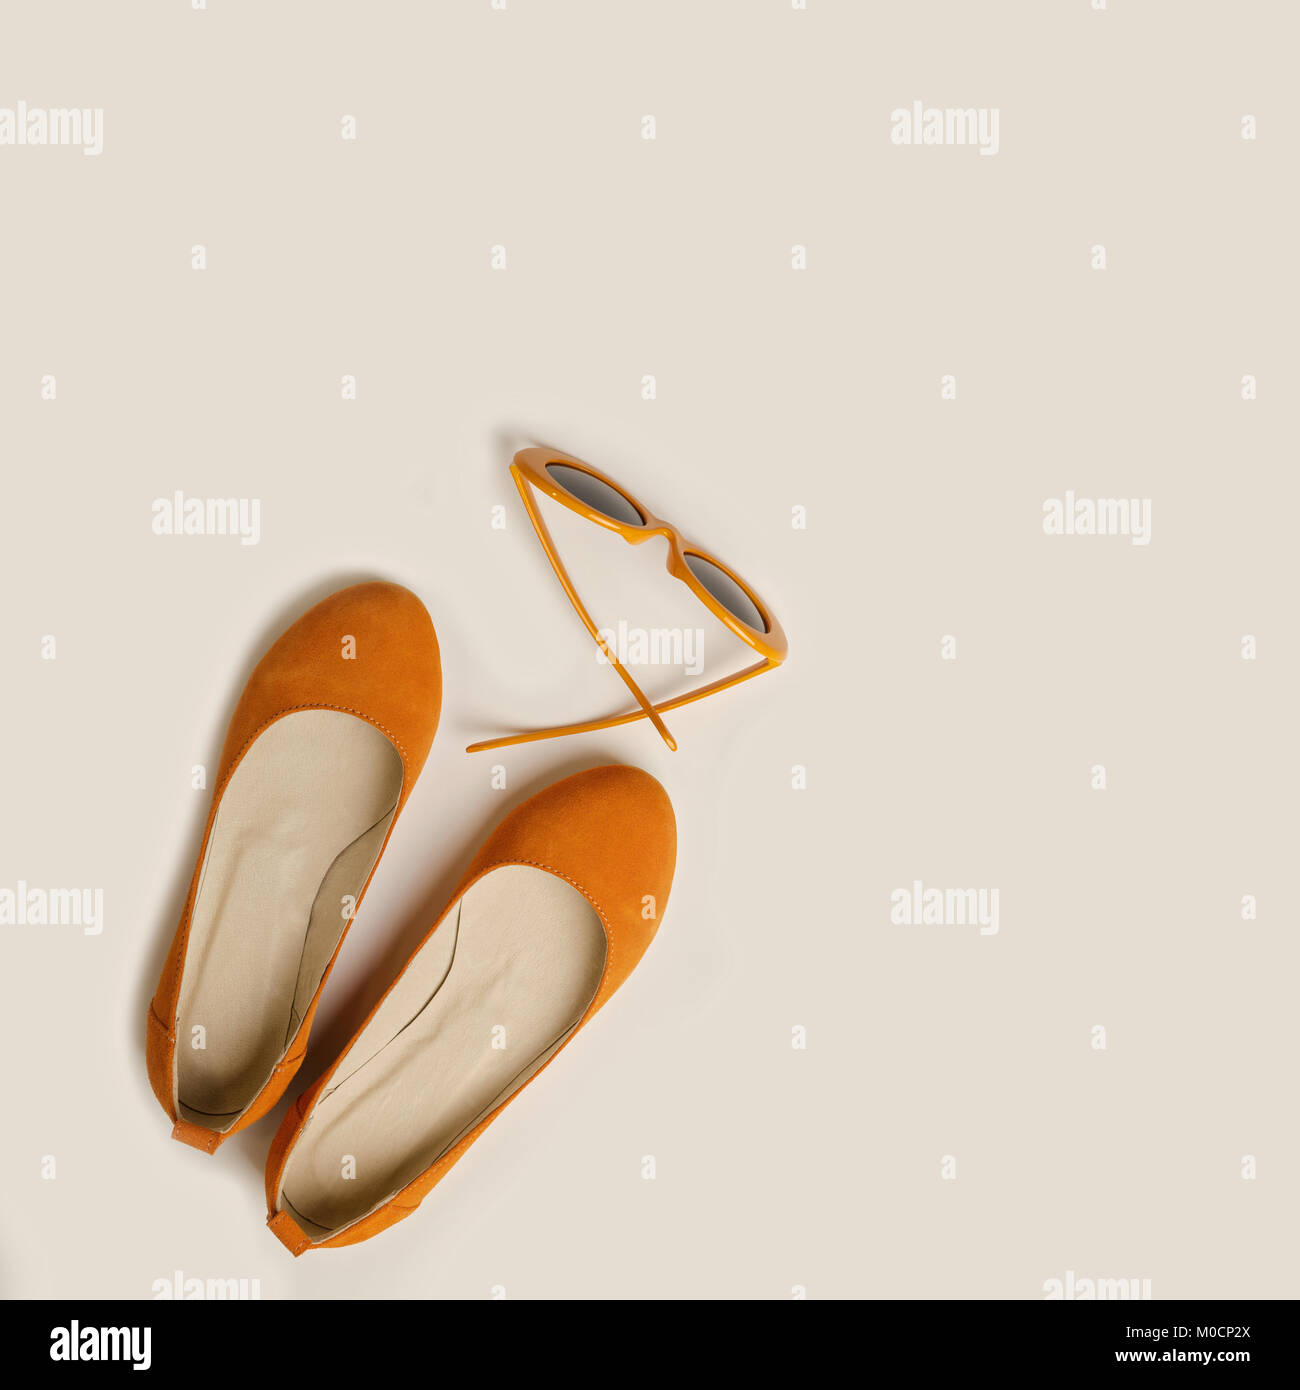 Fashion accessories for the beach - shoes and orange glasses  on a white background. Selective focus. - Stock Image